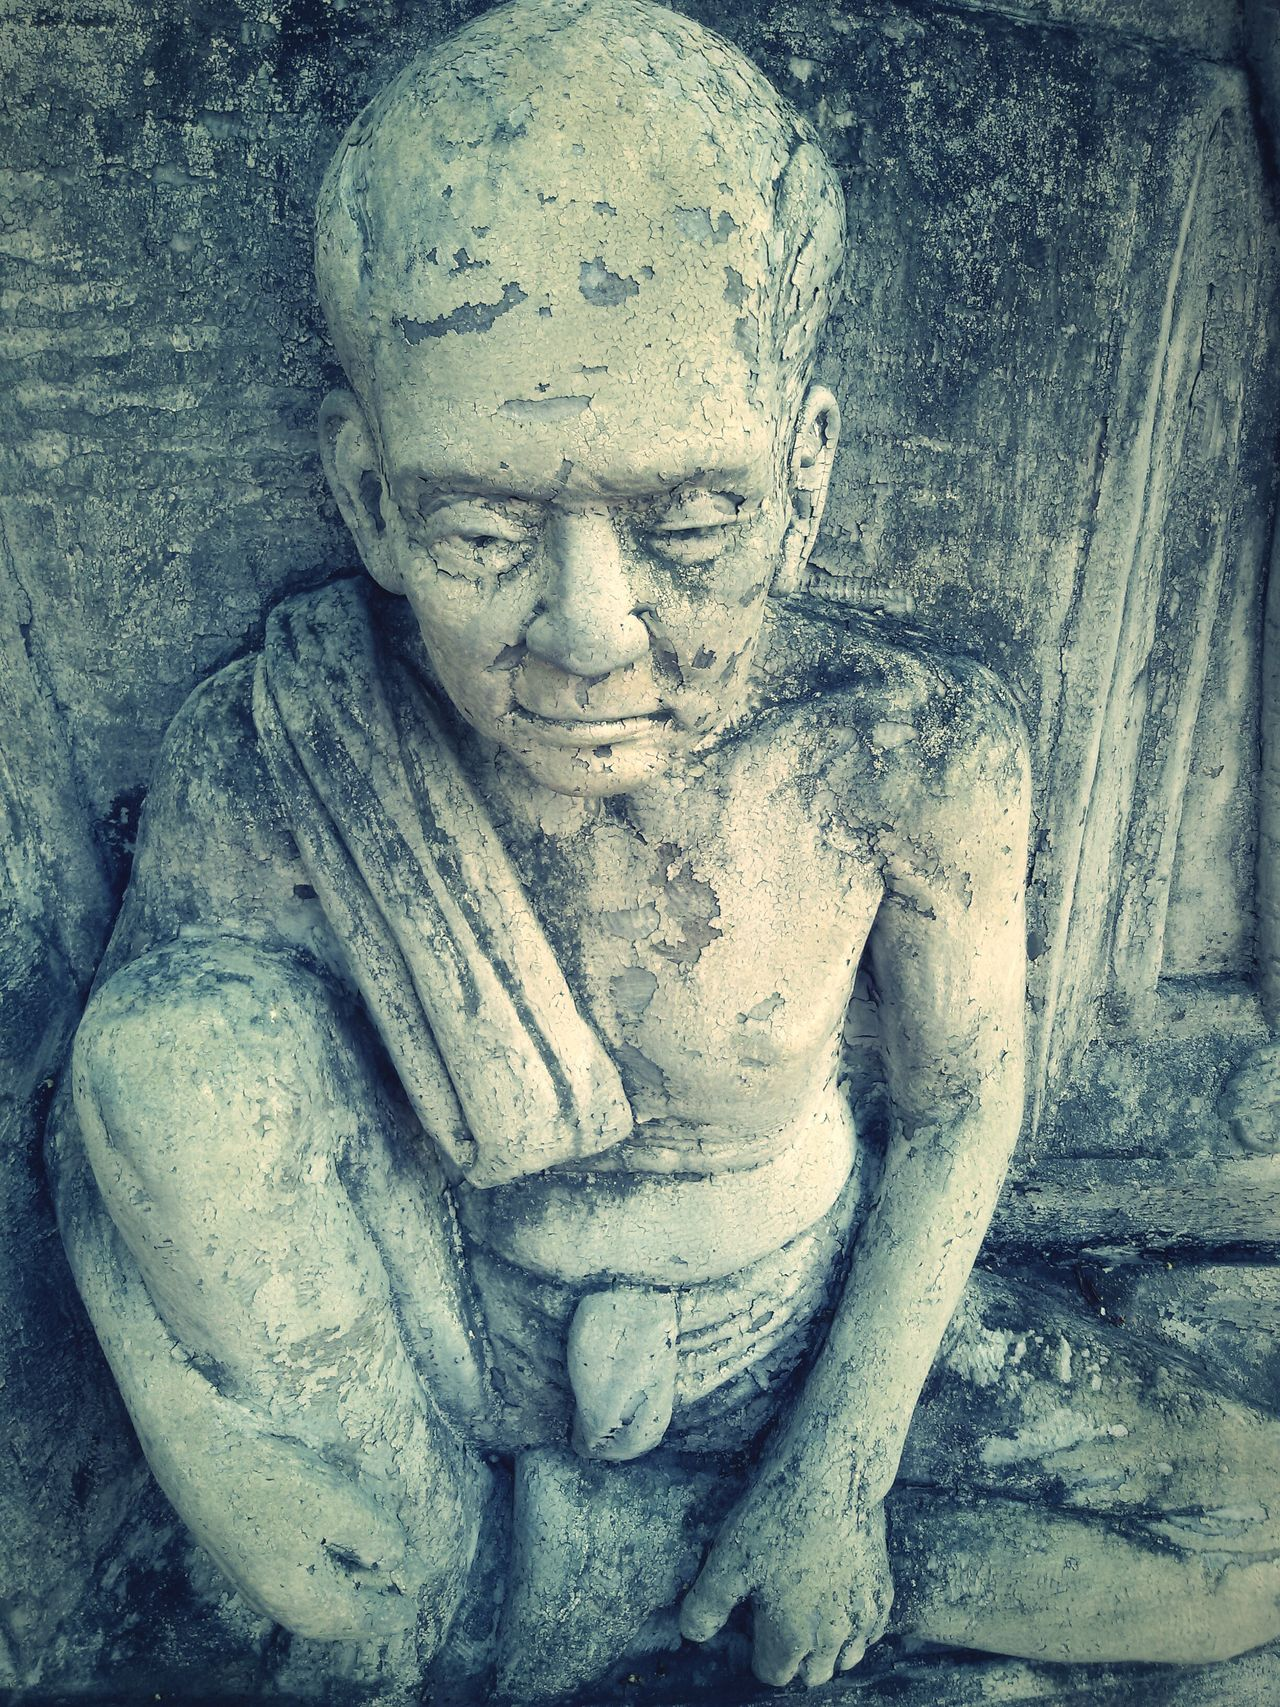 The Old Man in Old Sculpture : The Old Thai Lifestyle, Good Life in Good Time, Getting Inspired .